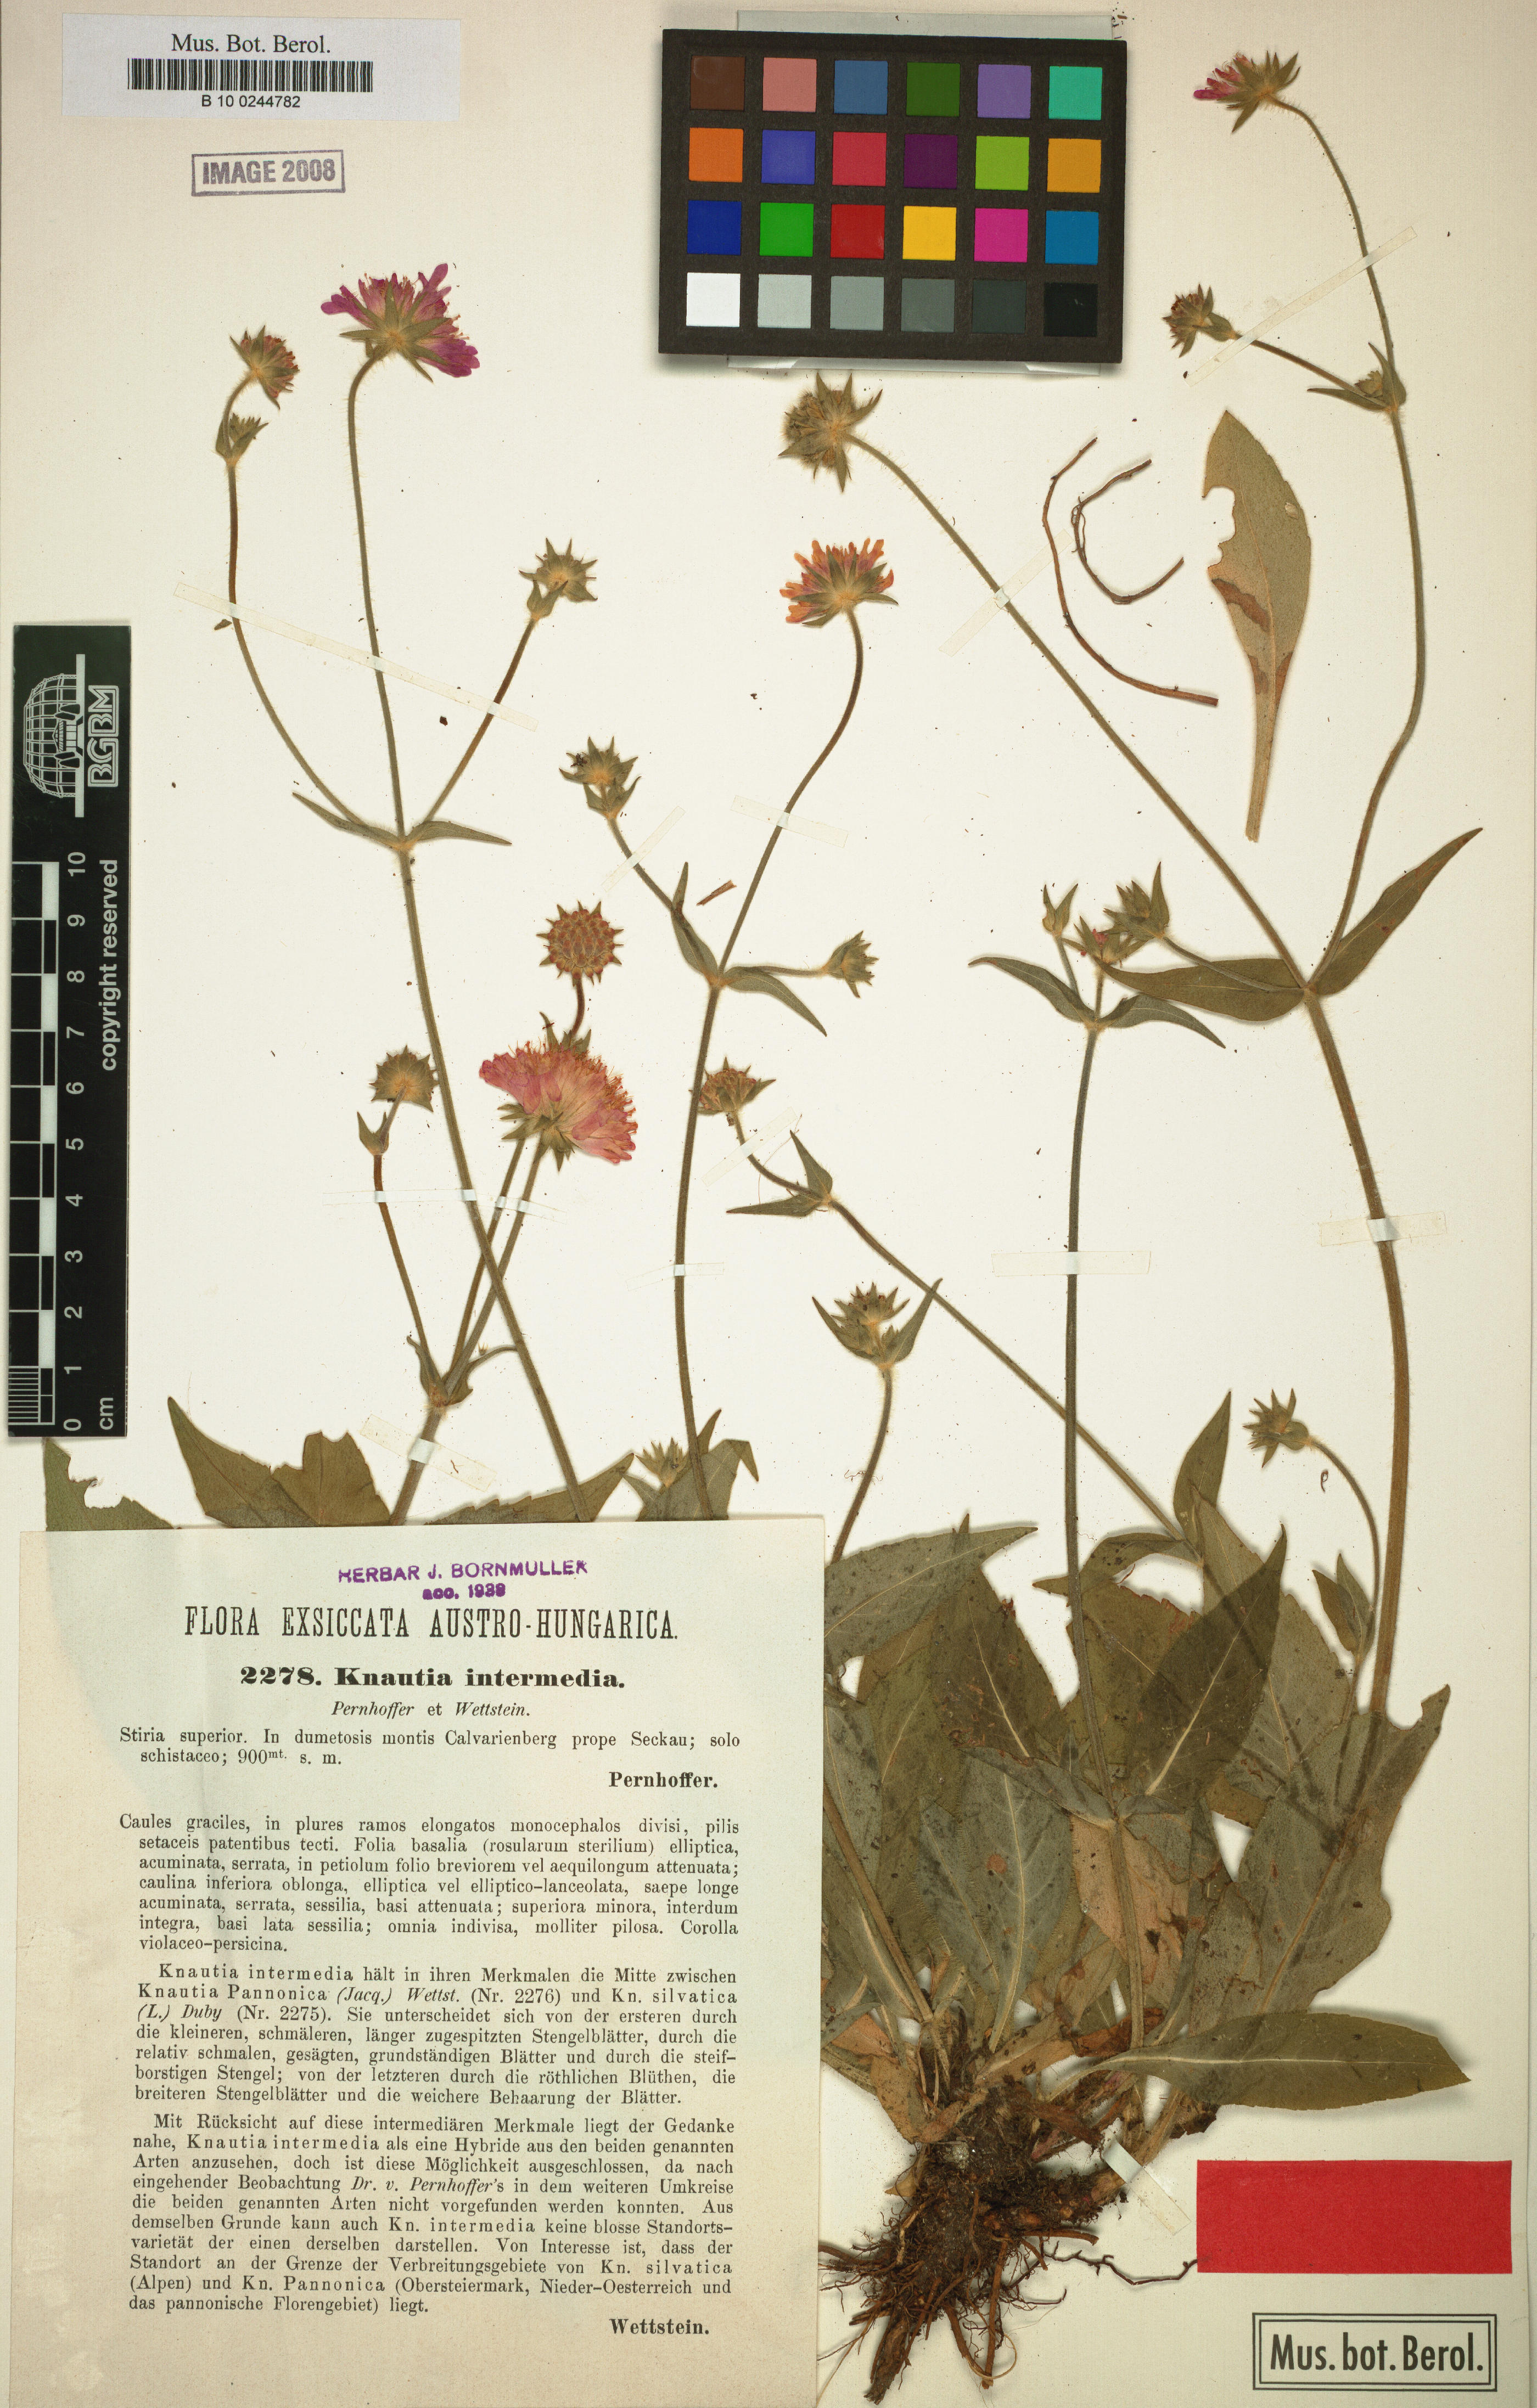 © Botanic Garden and Botanical Museum Berlin-Dahlem, Freie Universität Berlin<br>by Röpert, D. (Ed.) 2000- (continuously updated): Digital specimen images at the Herbarium Berolinense. - Published on the Internet http://ww2.bgbm.org/herbarium/ (Barcode: B 10 0244782 / ImageId: 276360) [accessed 26-Nov-11].<br>